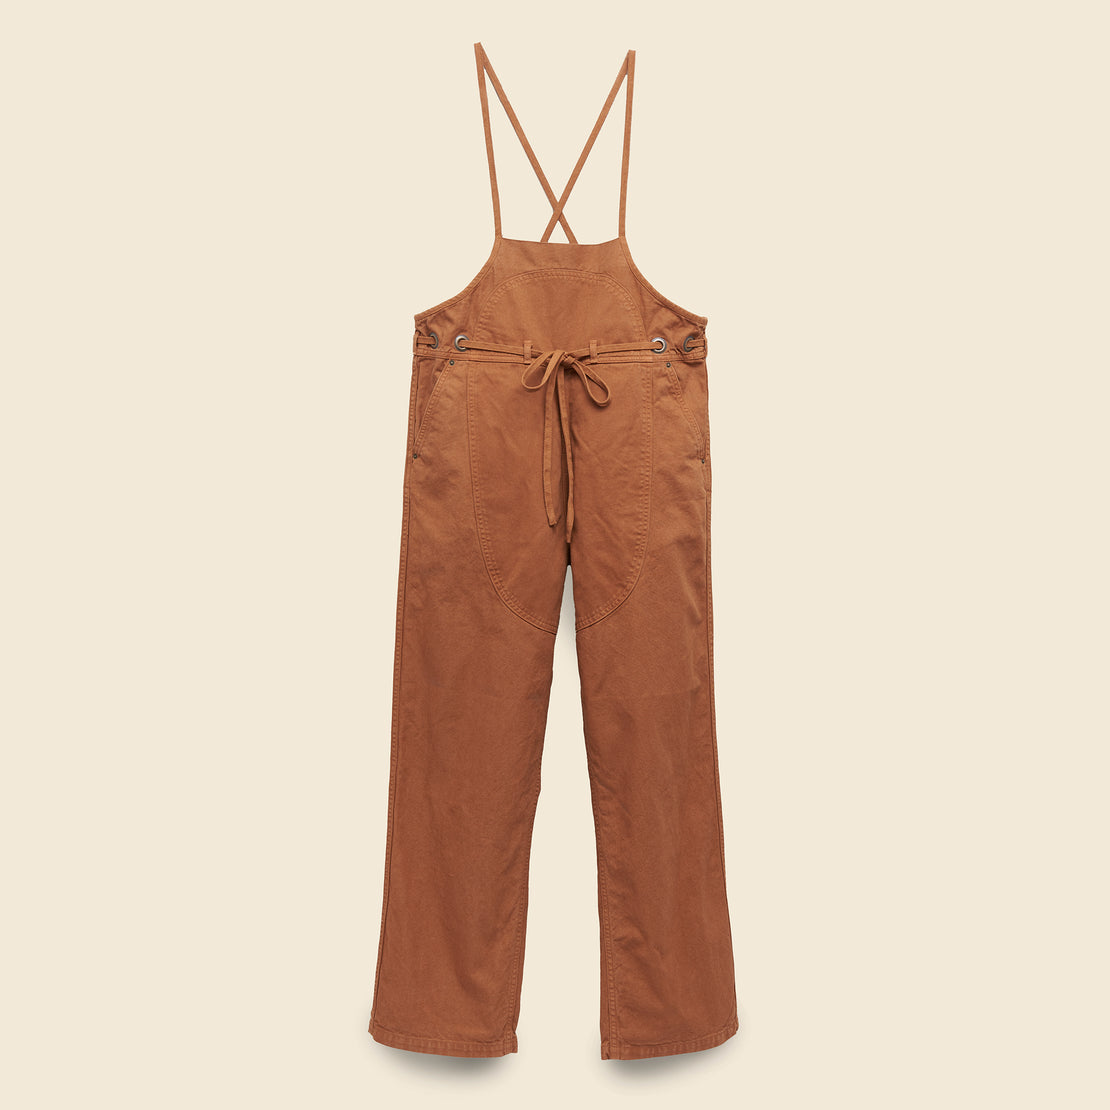 Kapital Lightweight Canvas Welder Overall - Leather Brown